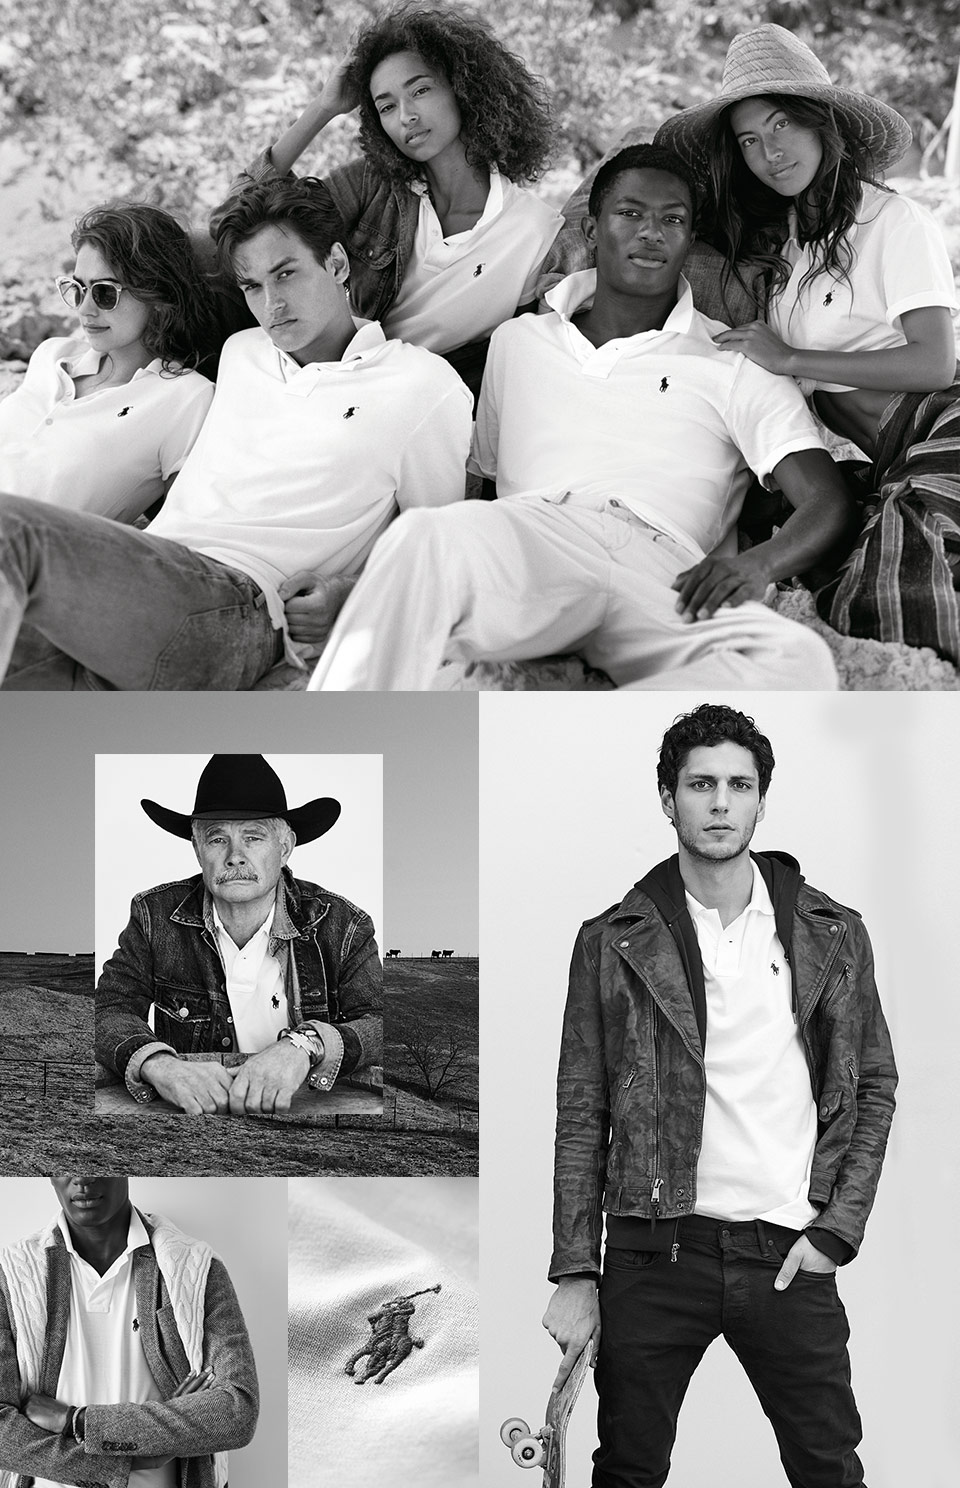 Collage of men in Polo shirts looks from casual to preppy